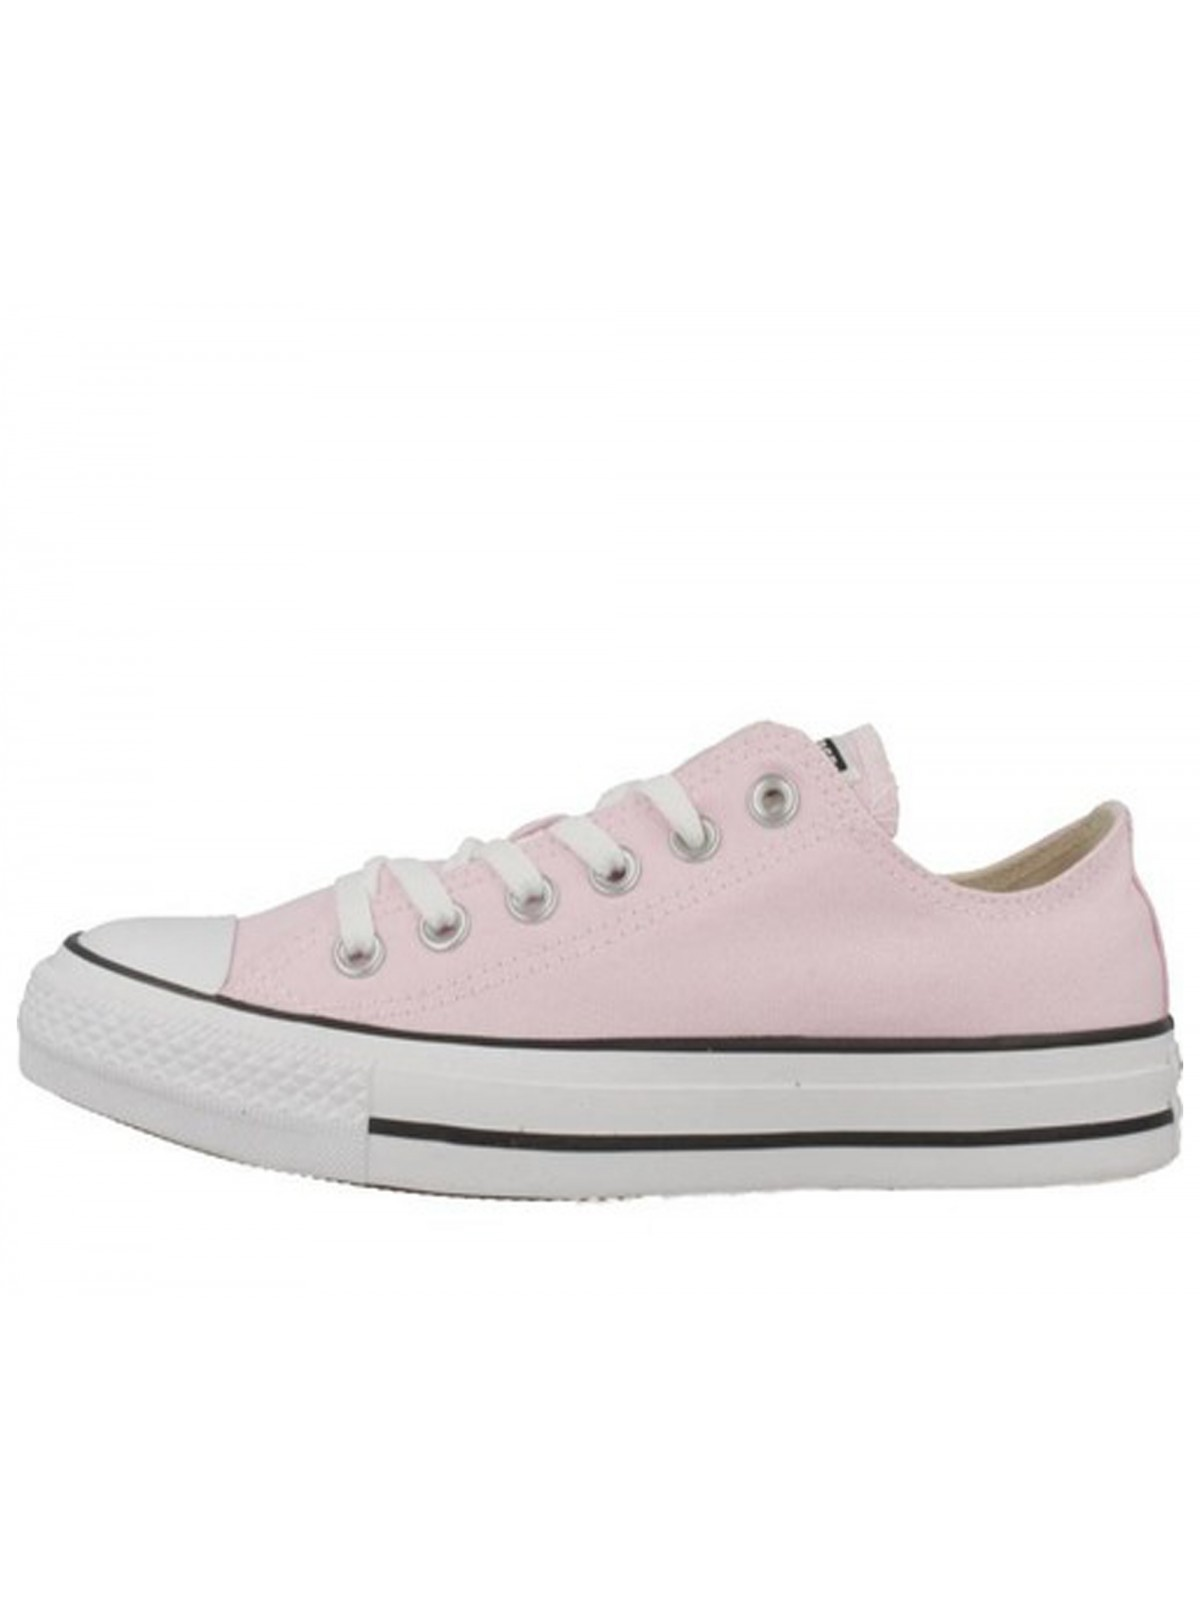 Converse Chuck Taylor all star toile basse pink foam